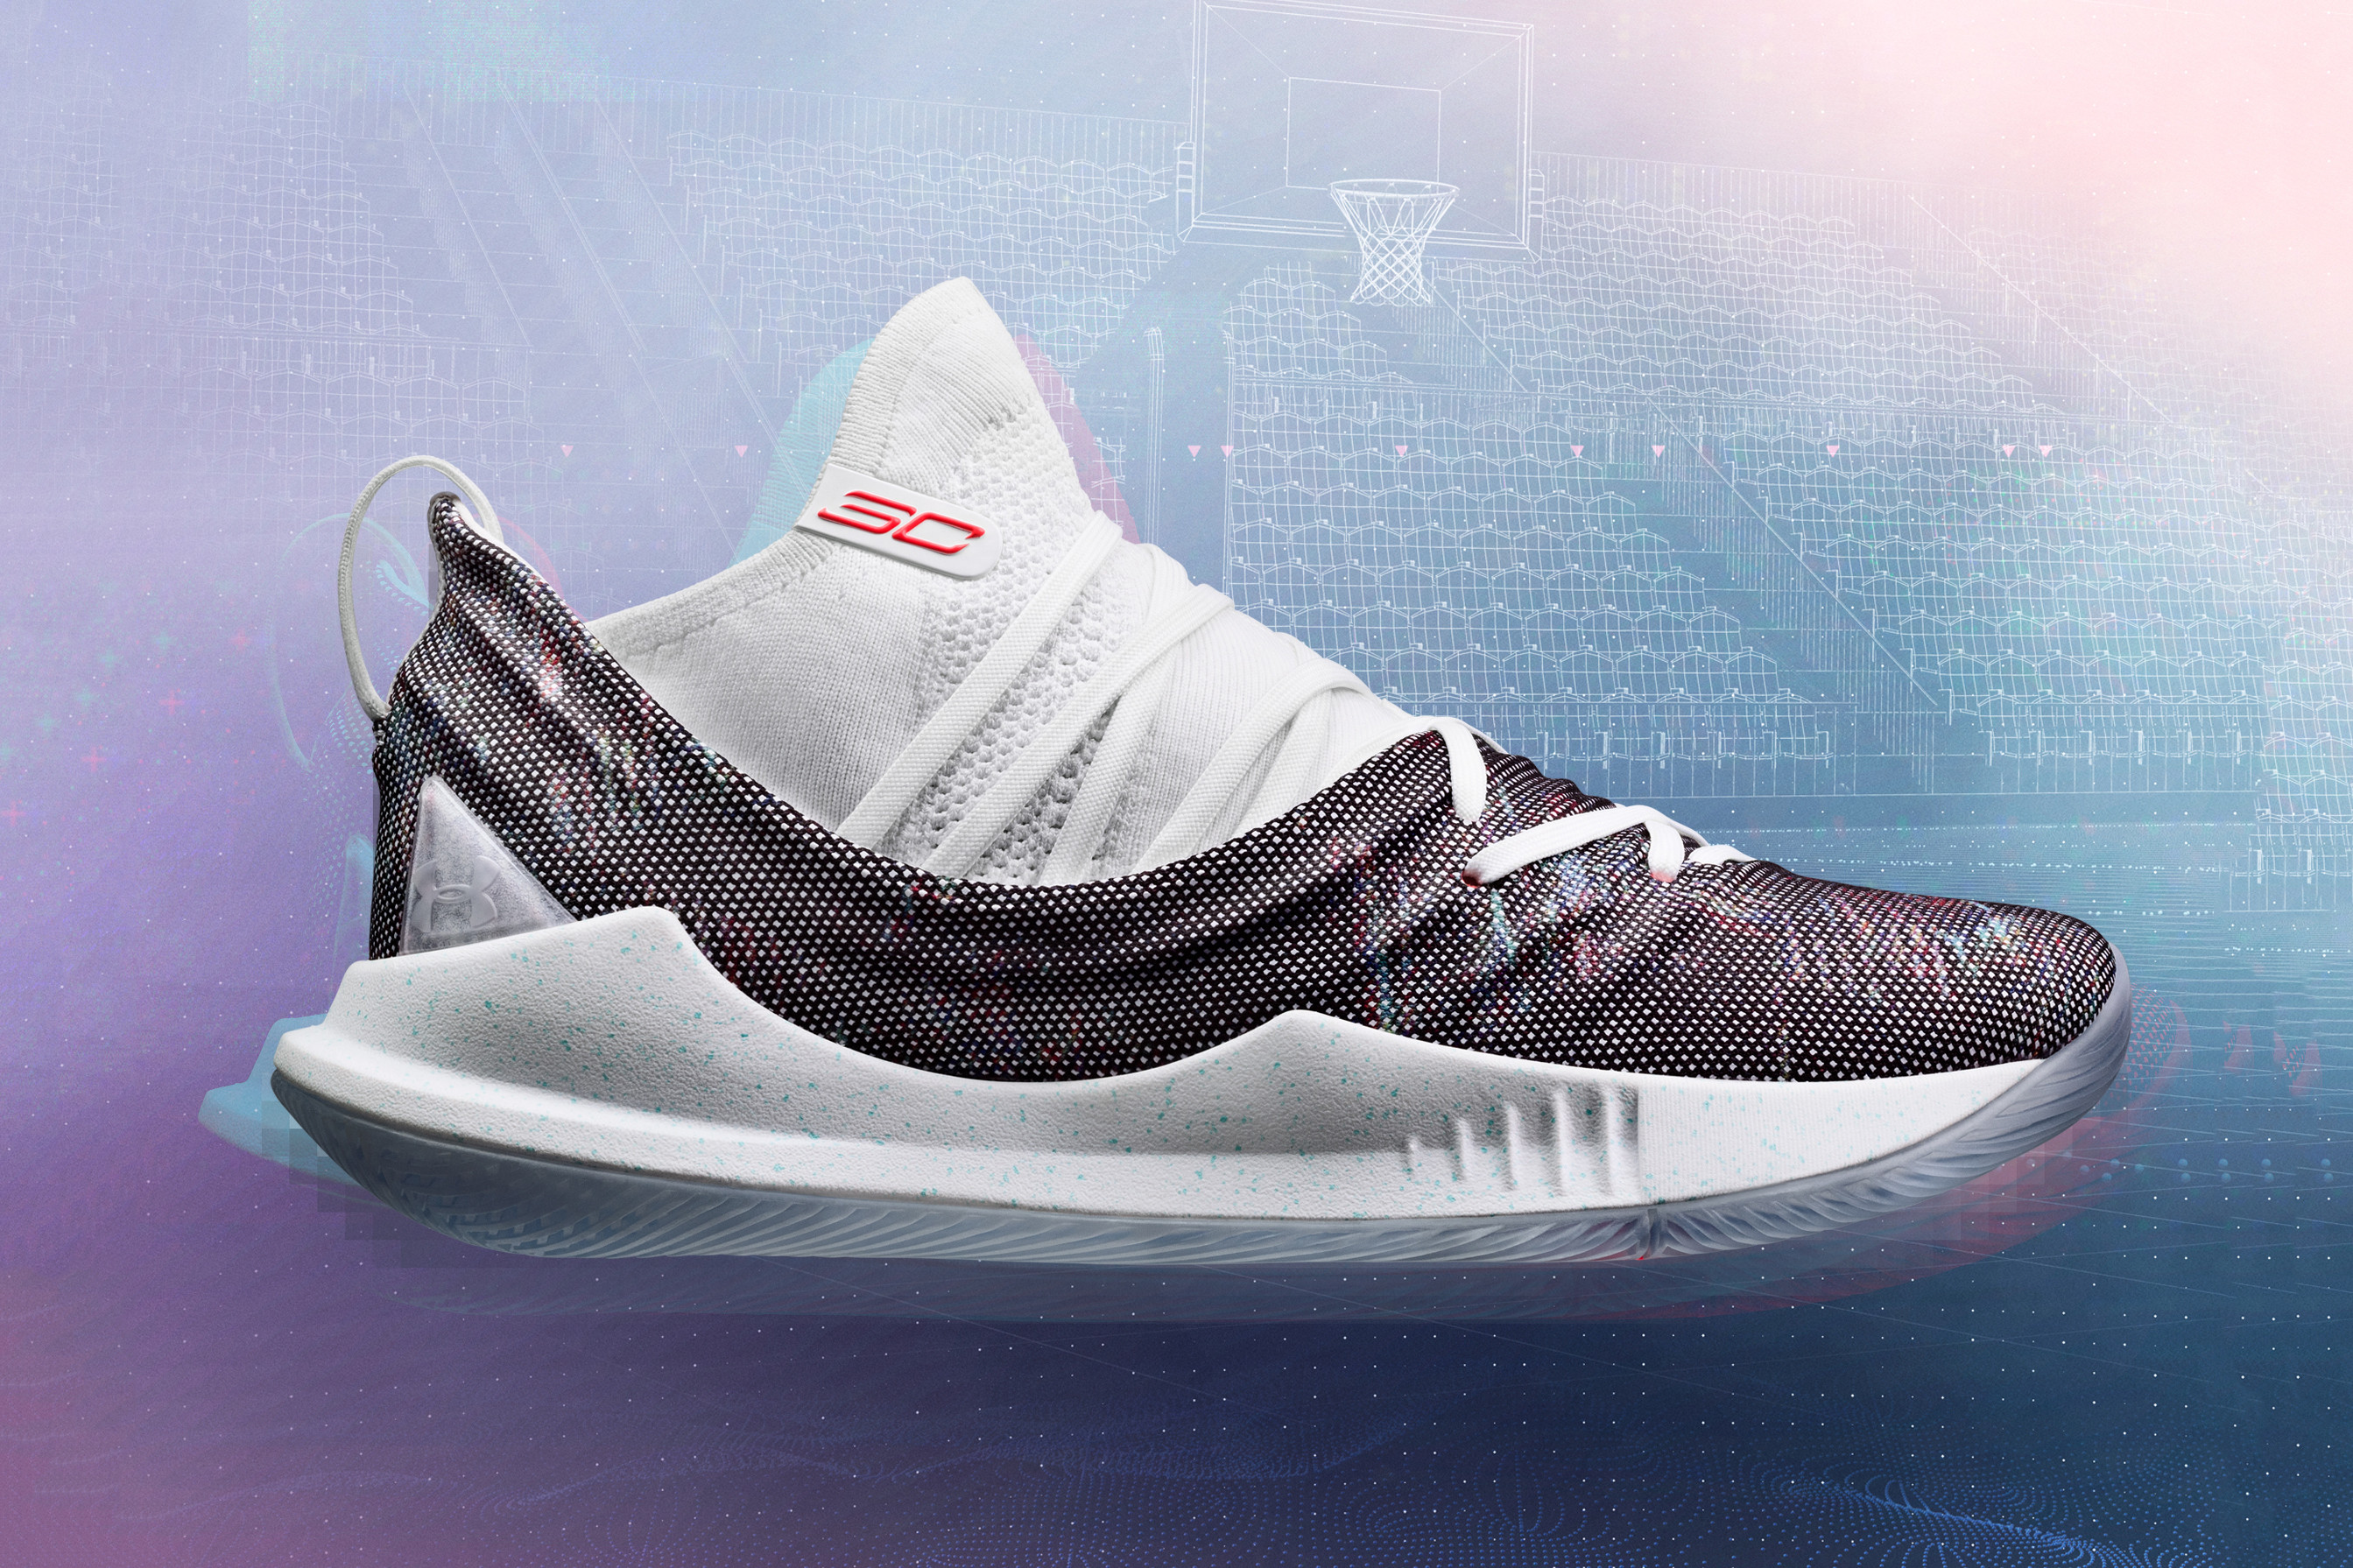 Steph Curry's Under Armour Curry 5